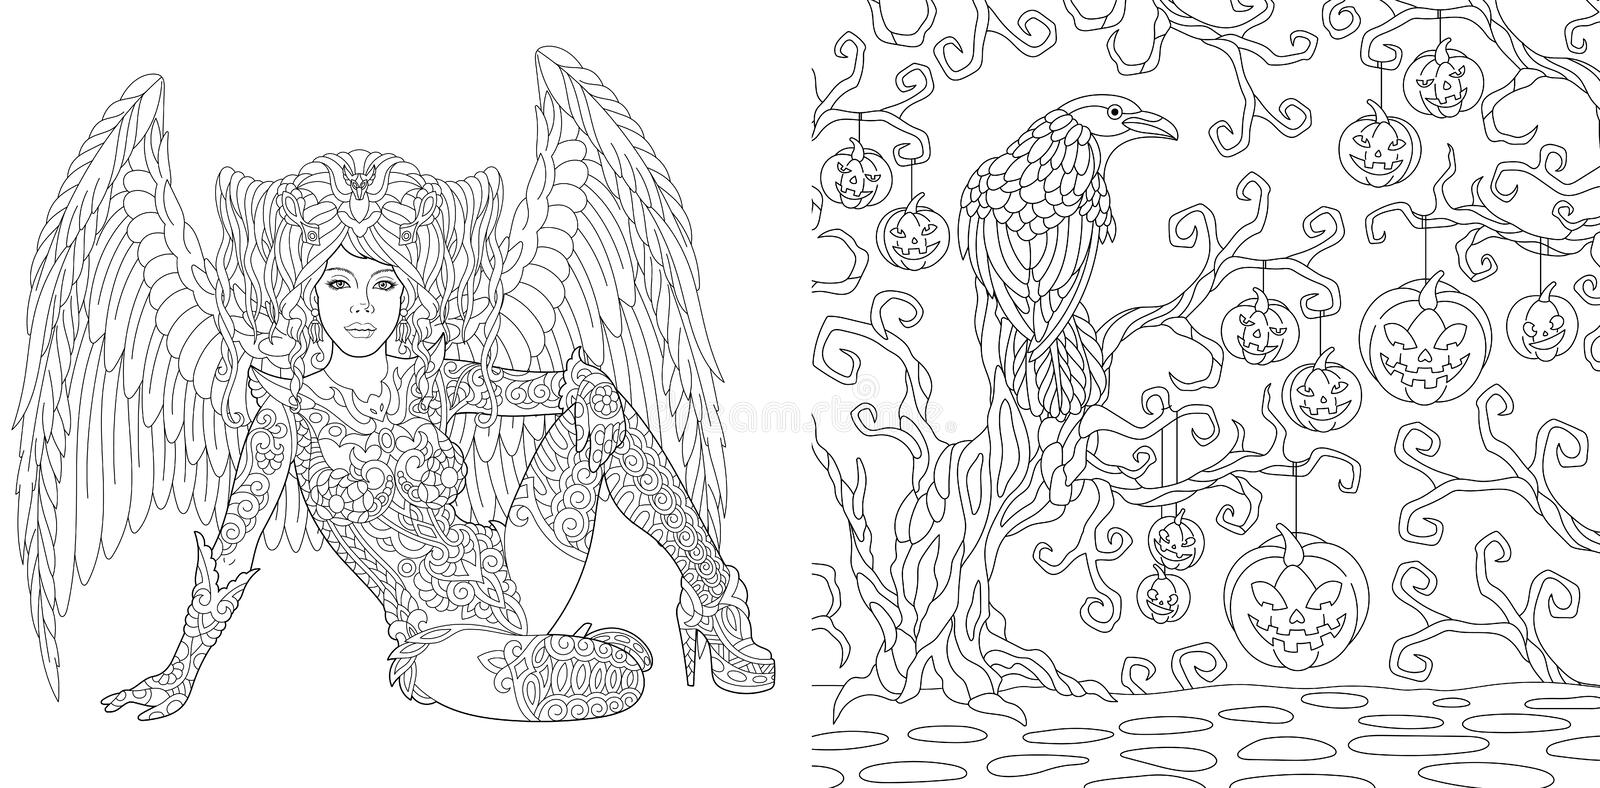 Girl Coloring Pages Stock Illustrations – 1,281 Girl Coloring Pages Stock  Illustrations, Vectors & Clipart - Dreamstime